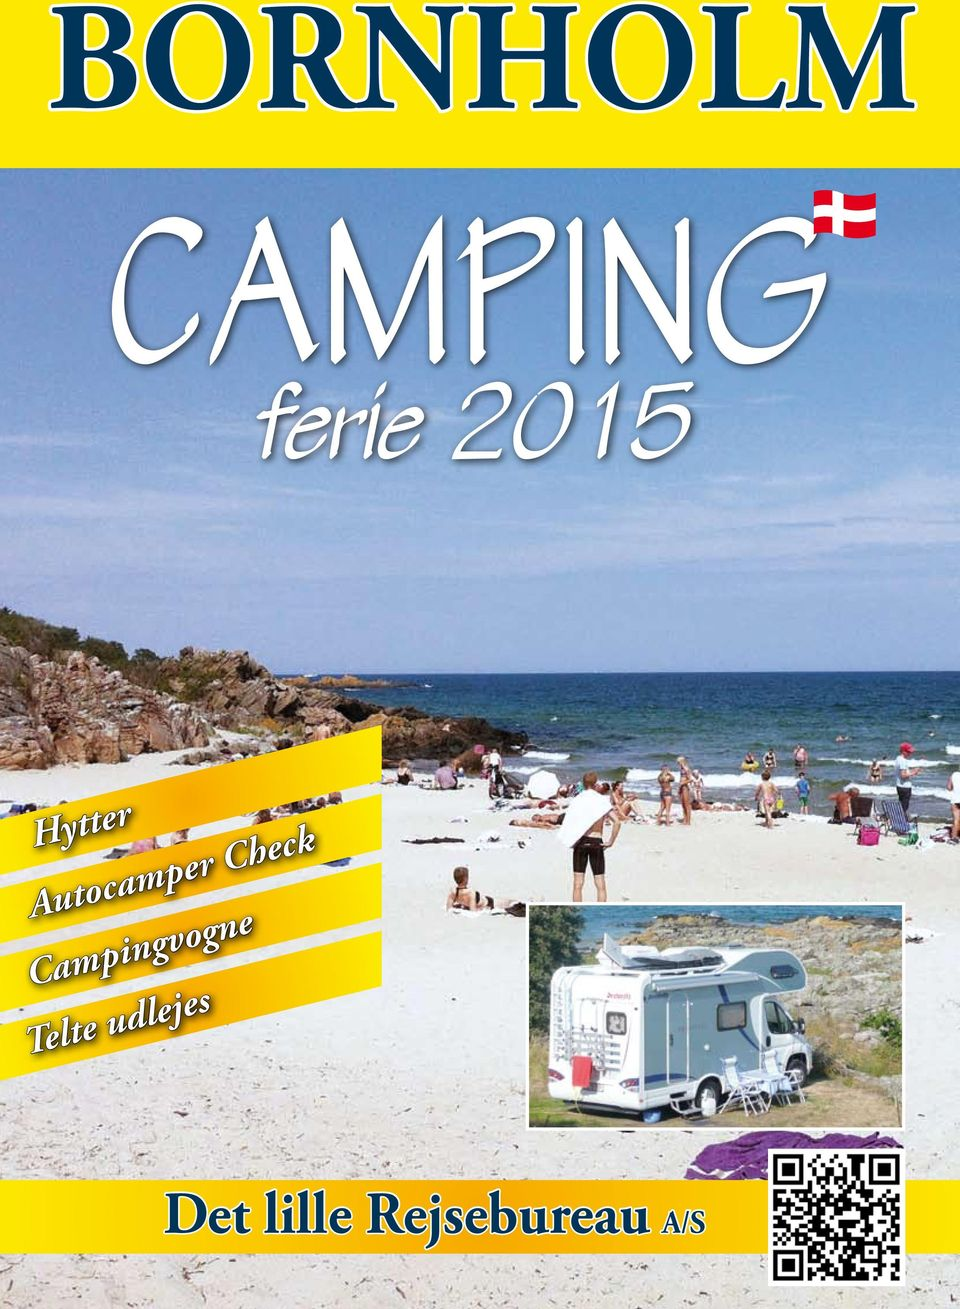 Check Campingvogne Telte